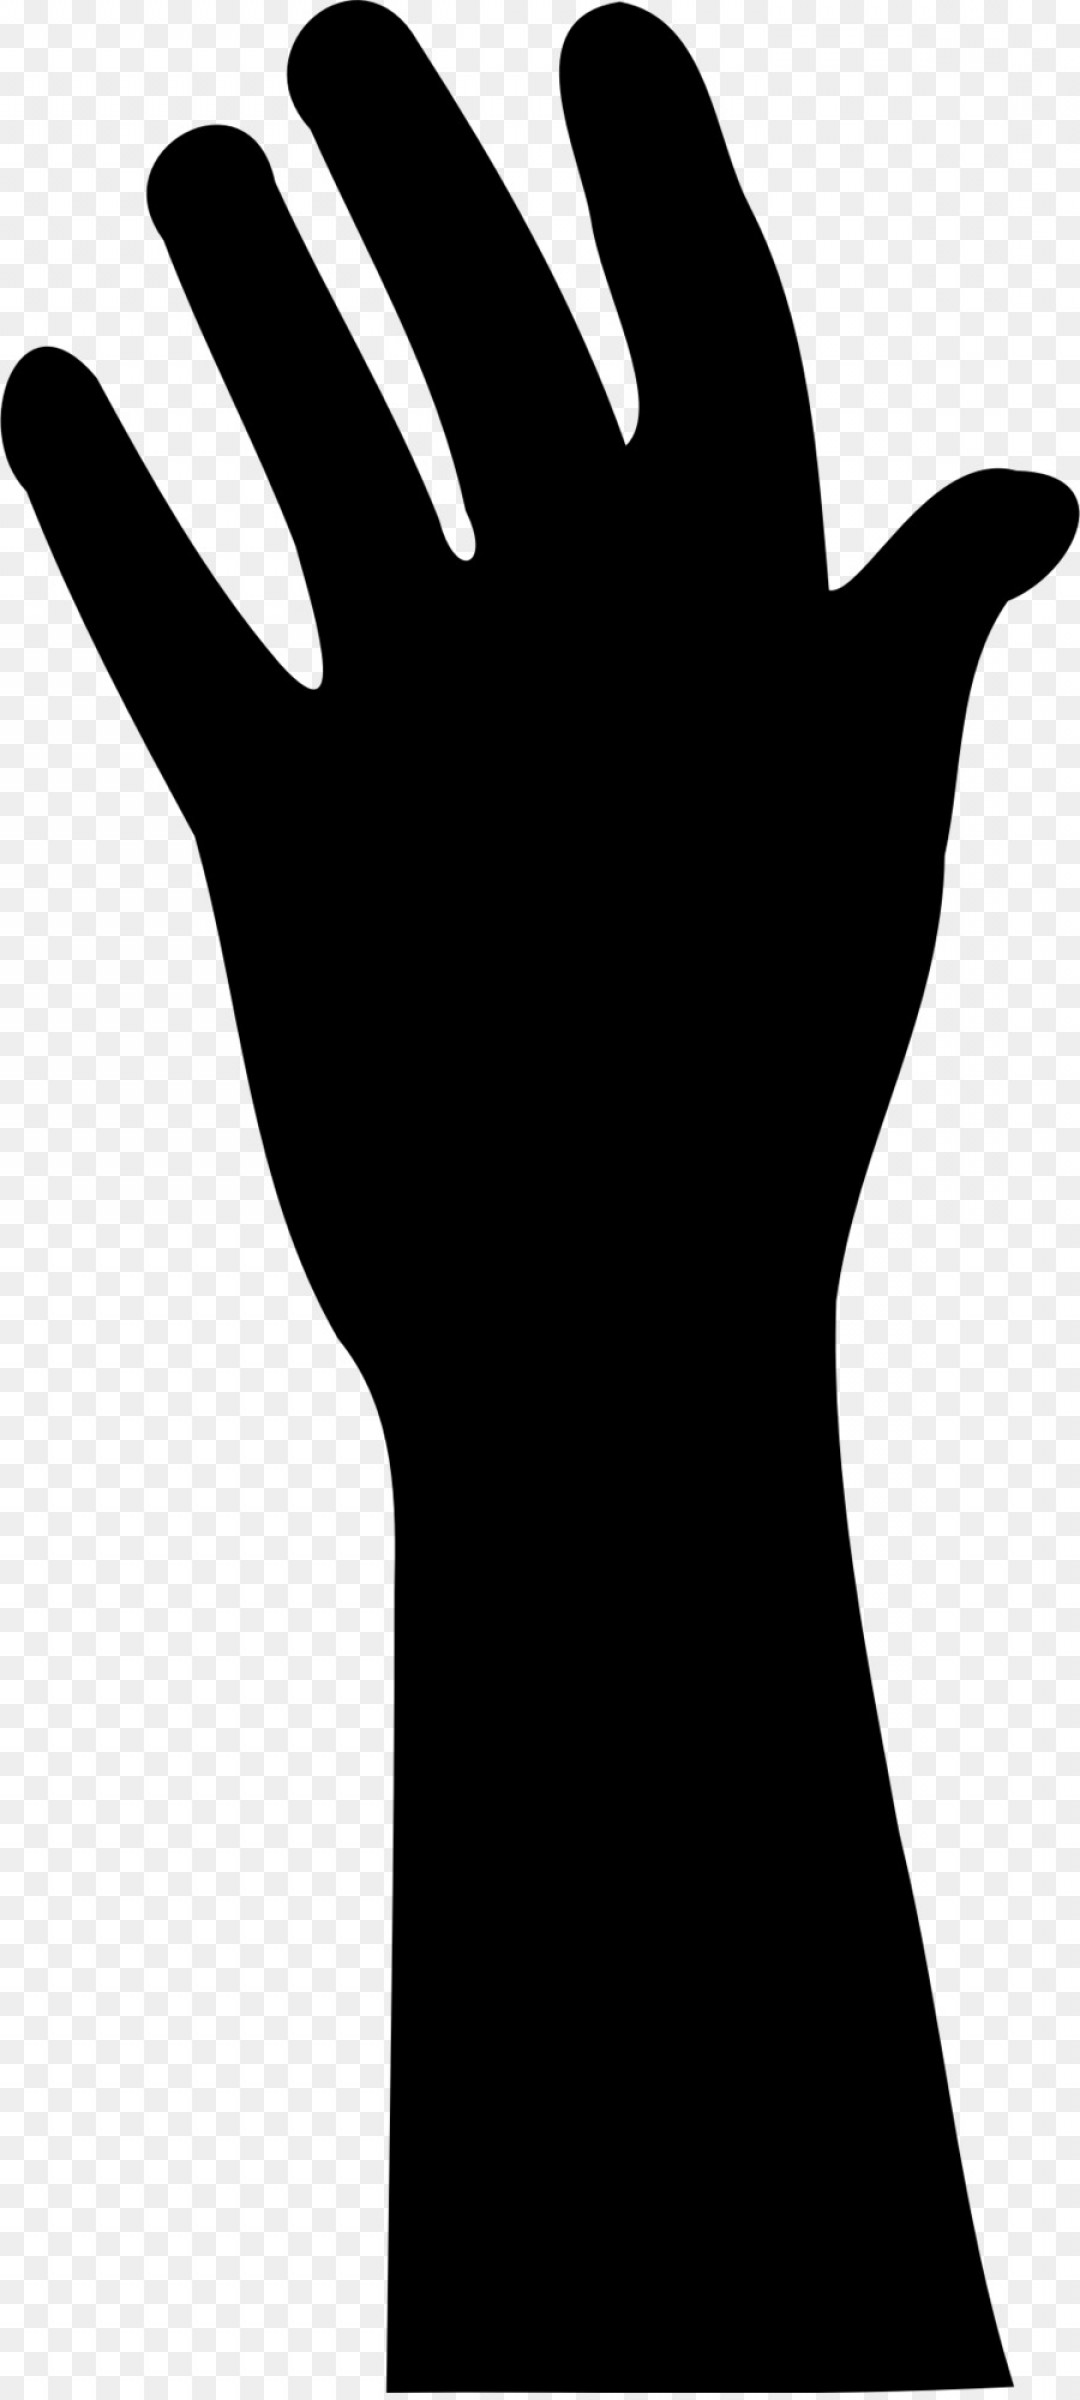 Hand vector clipart graphic black and white stock Png Praying Hands Silhouette Clip Art Arm Vector | SOIDERGI graphic black and white stock